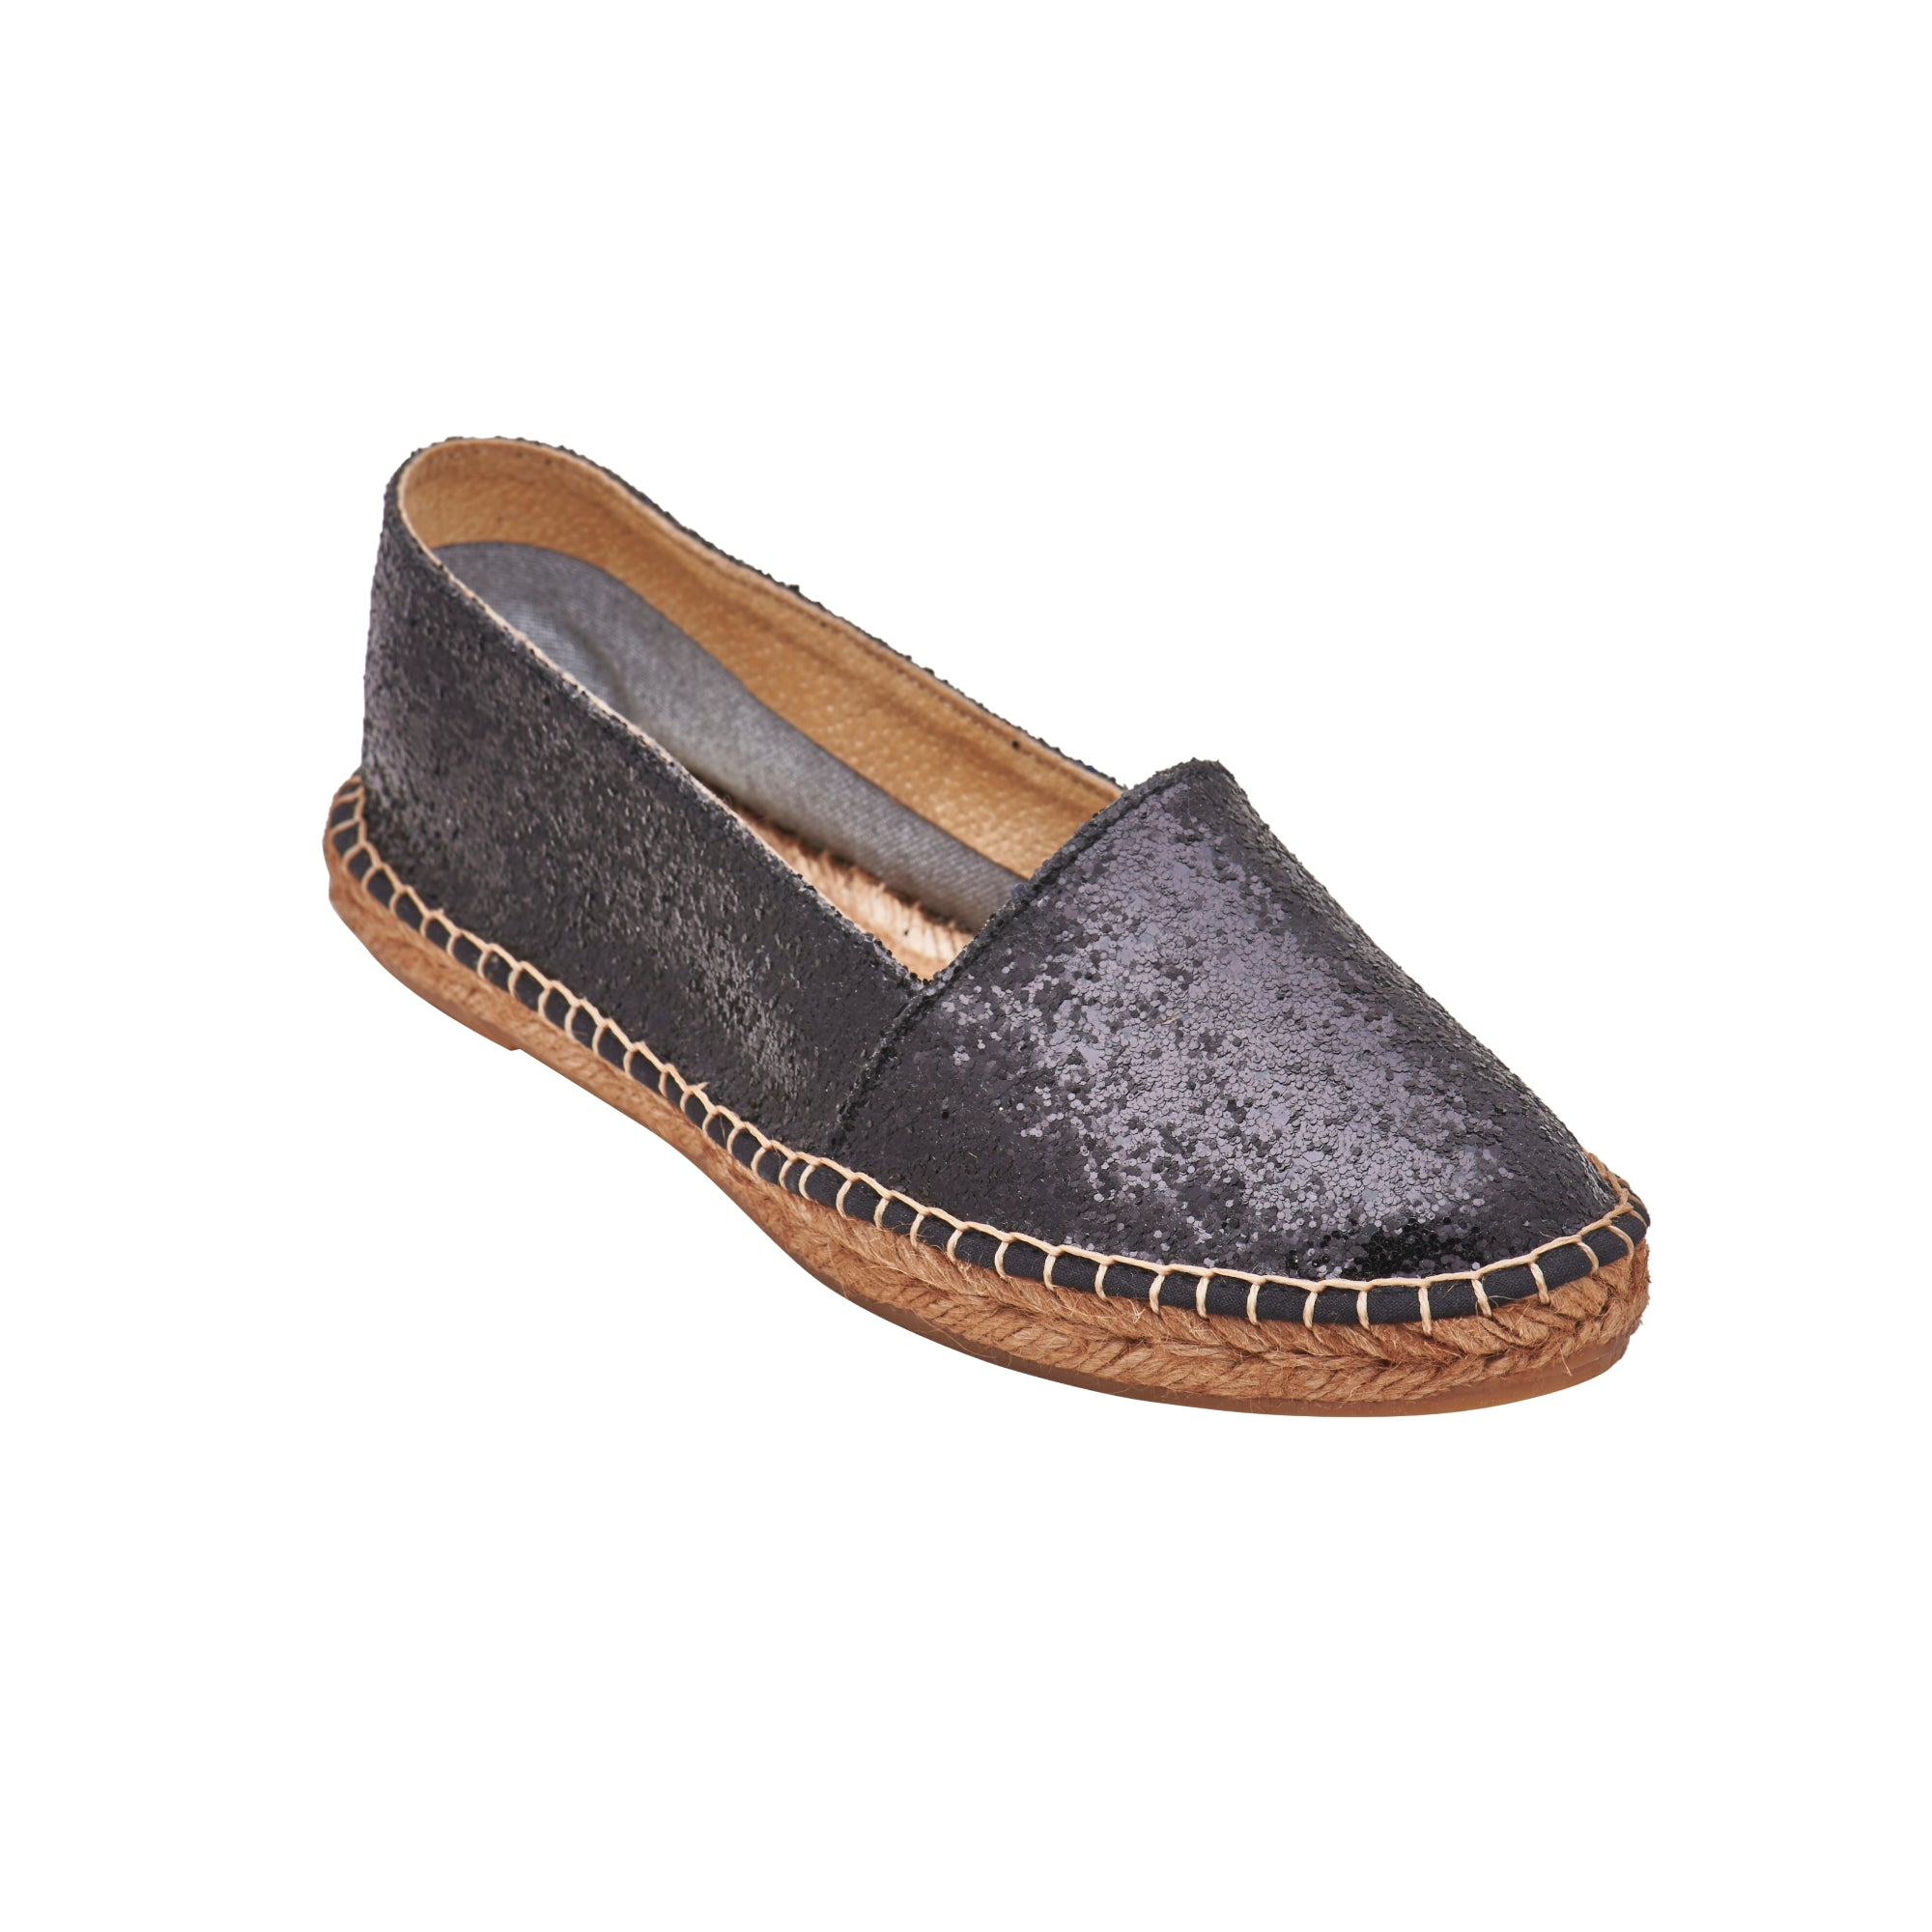 GLITTER Black espadrilles [sizes 36, 40, 41 available]